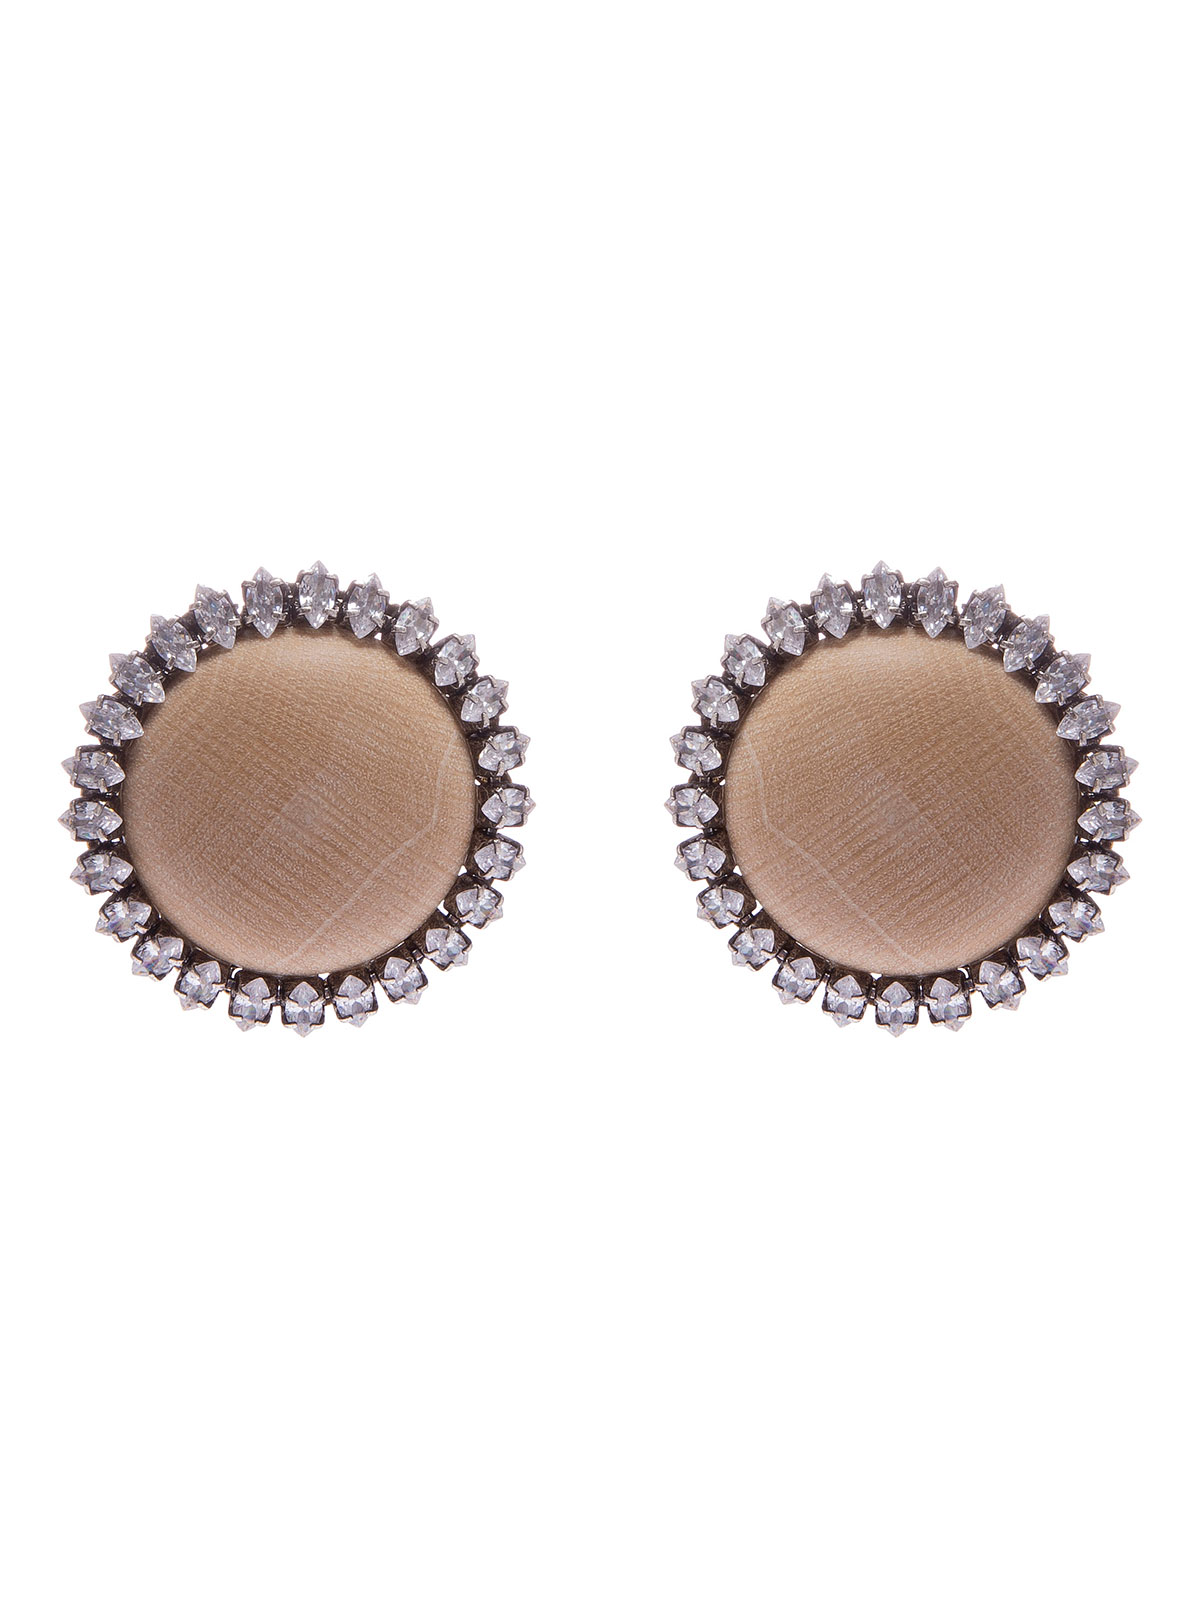 Wood cabochon earrings with crystals